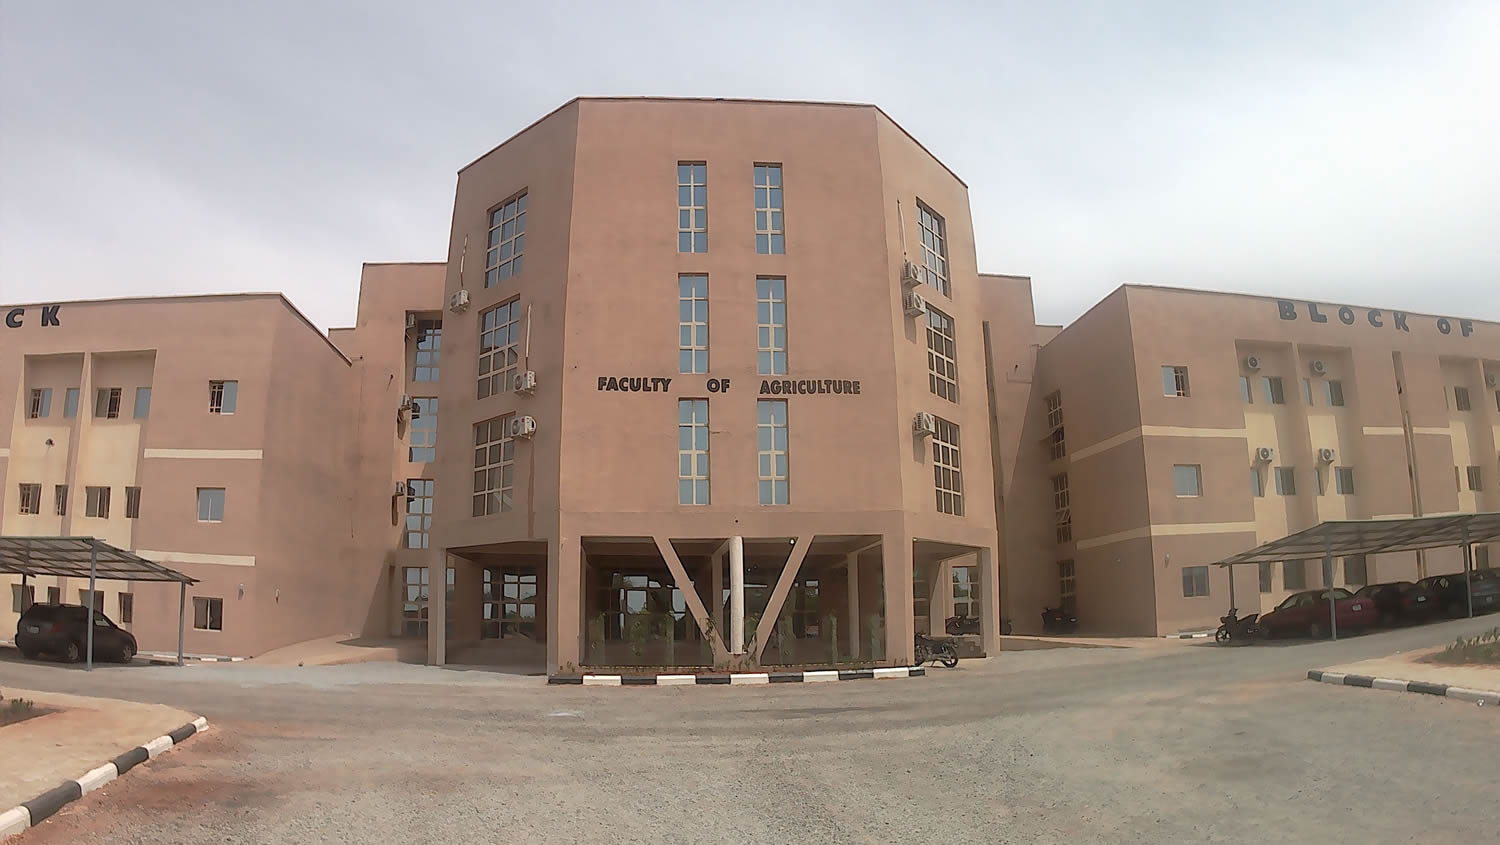 Faculty of Agriculture - Usmanu Danfodiyo University Sokoto